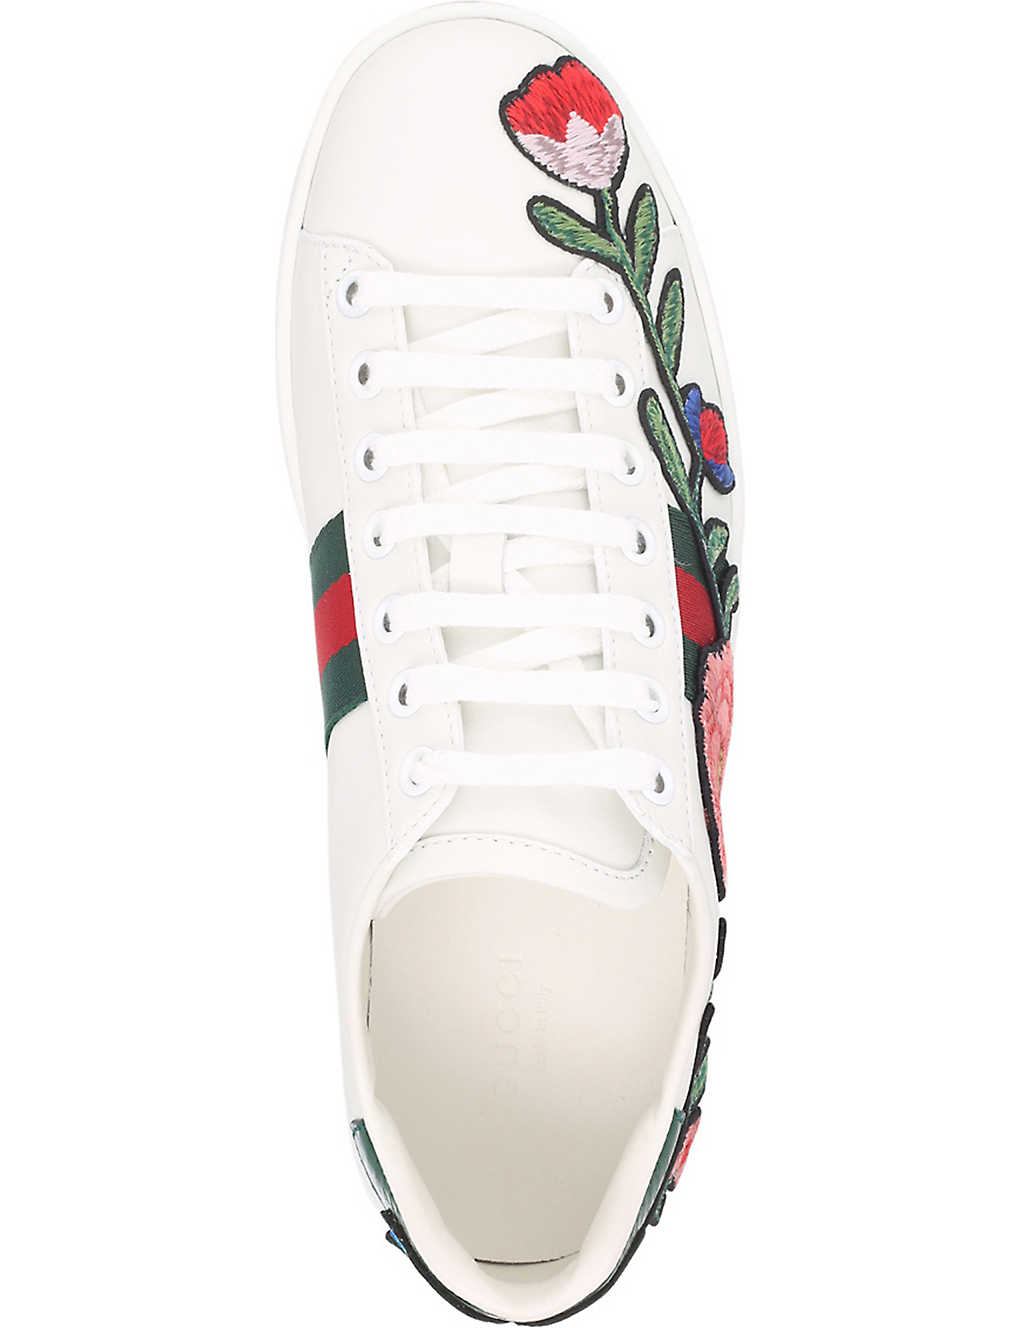 90341039bf2 ... New Ace floral embroidered leather trainers - Whitered ...